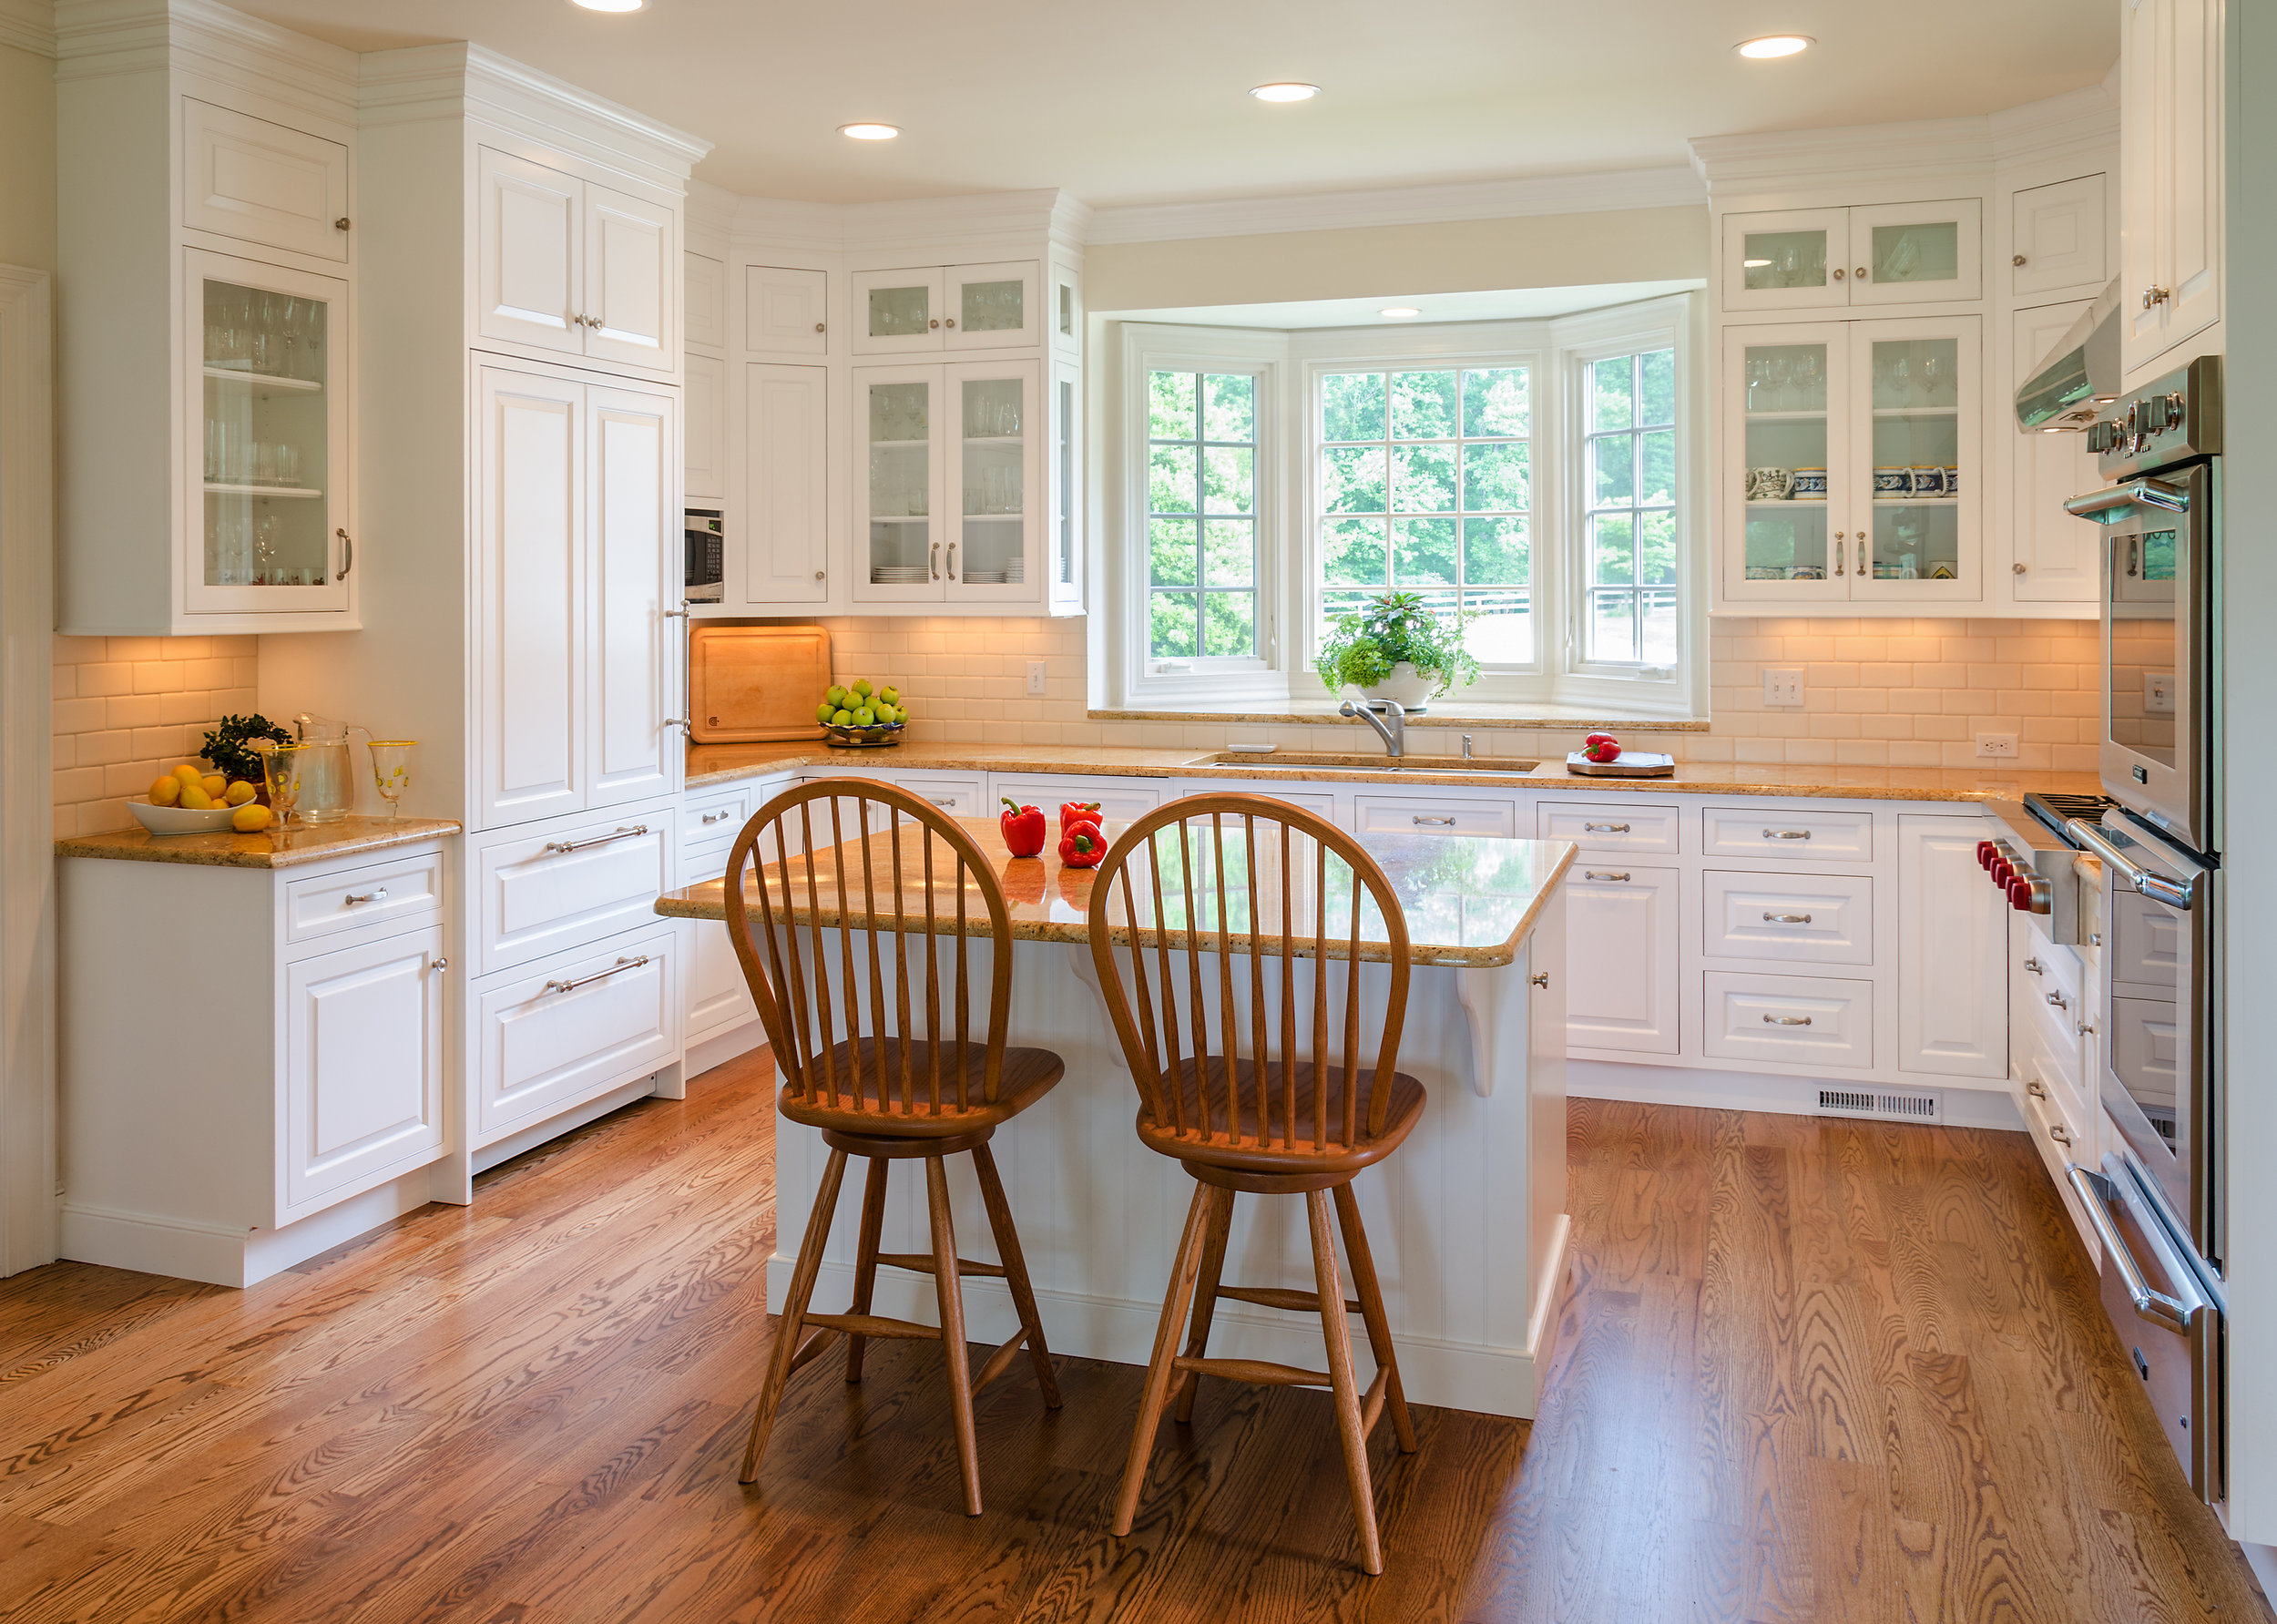 Custom-Kitchens-Armstrong-Kitchen-52813-Island-Cabinets.jpg